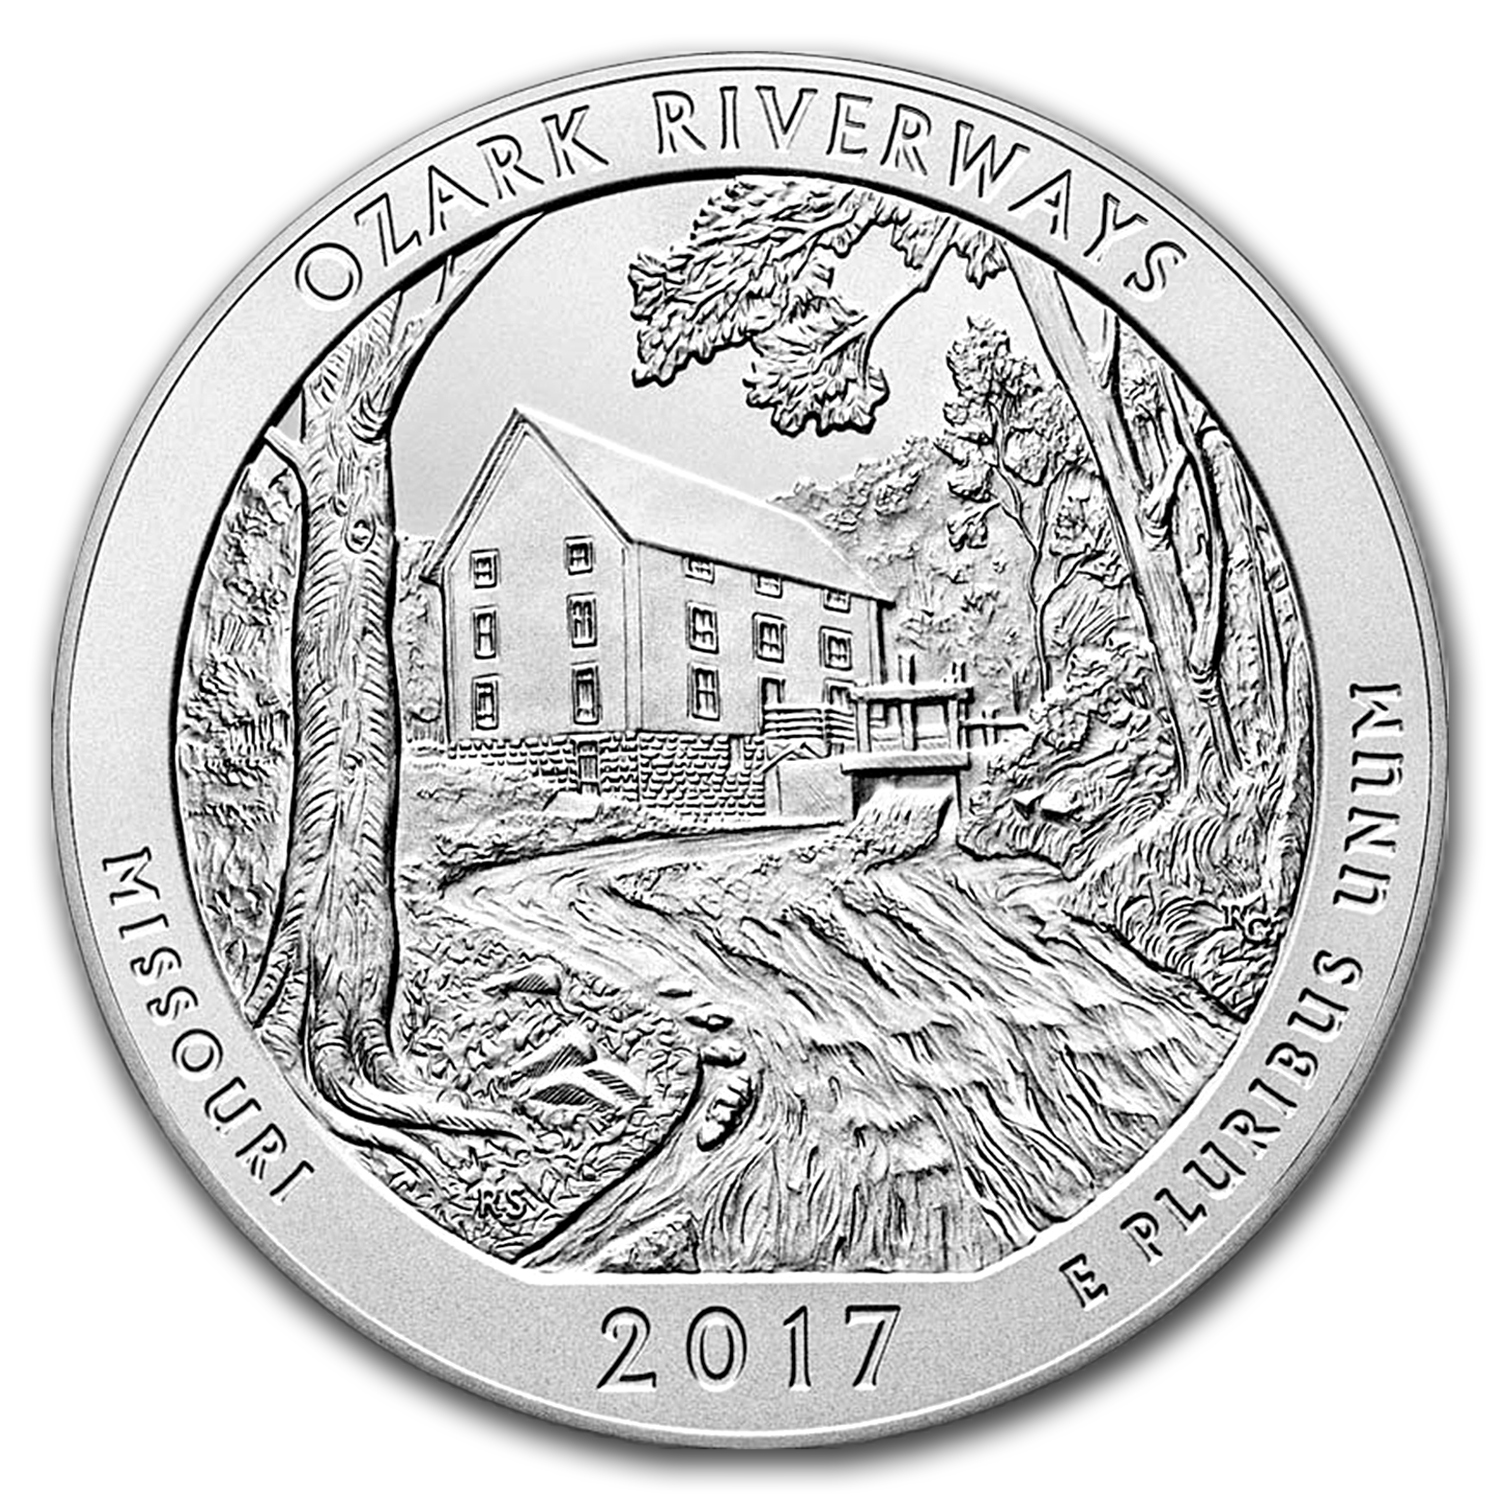 2017-P 5 oz Silver ATB Ozark Riverways (w/Box & COA)